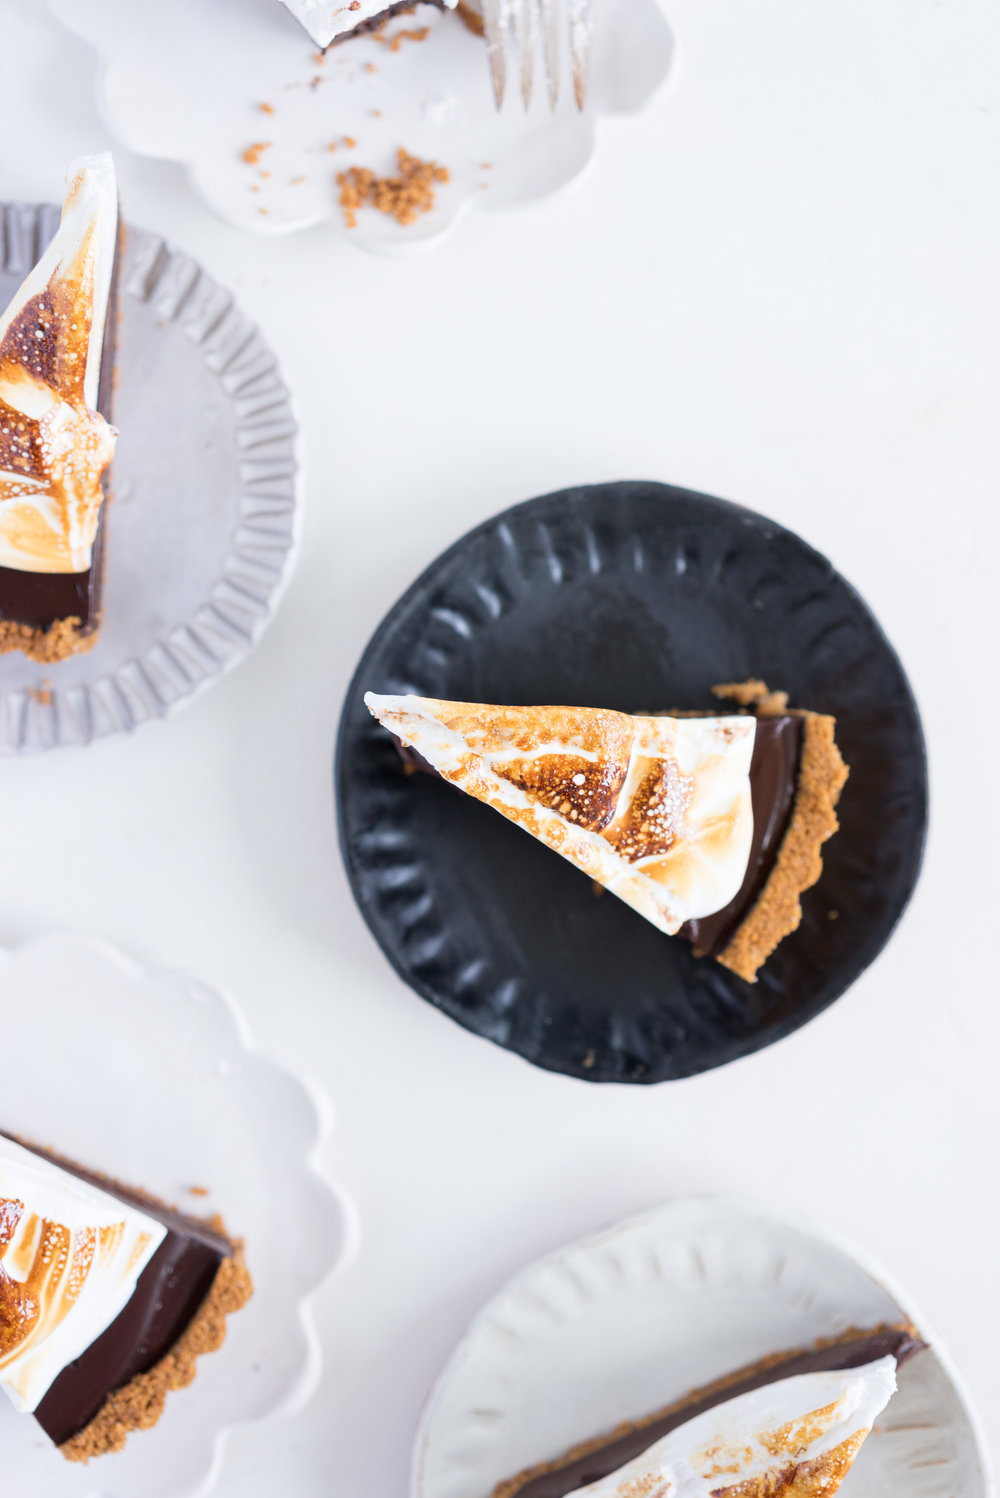 S'mores tart - brown butter graham cracker crust, silky chocolate ganache filling, and toasty vanilla bean marshmallow